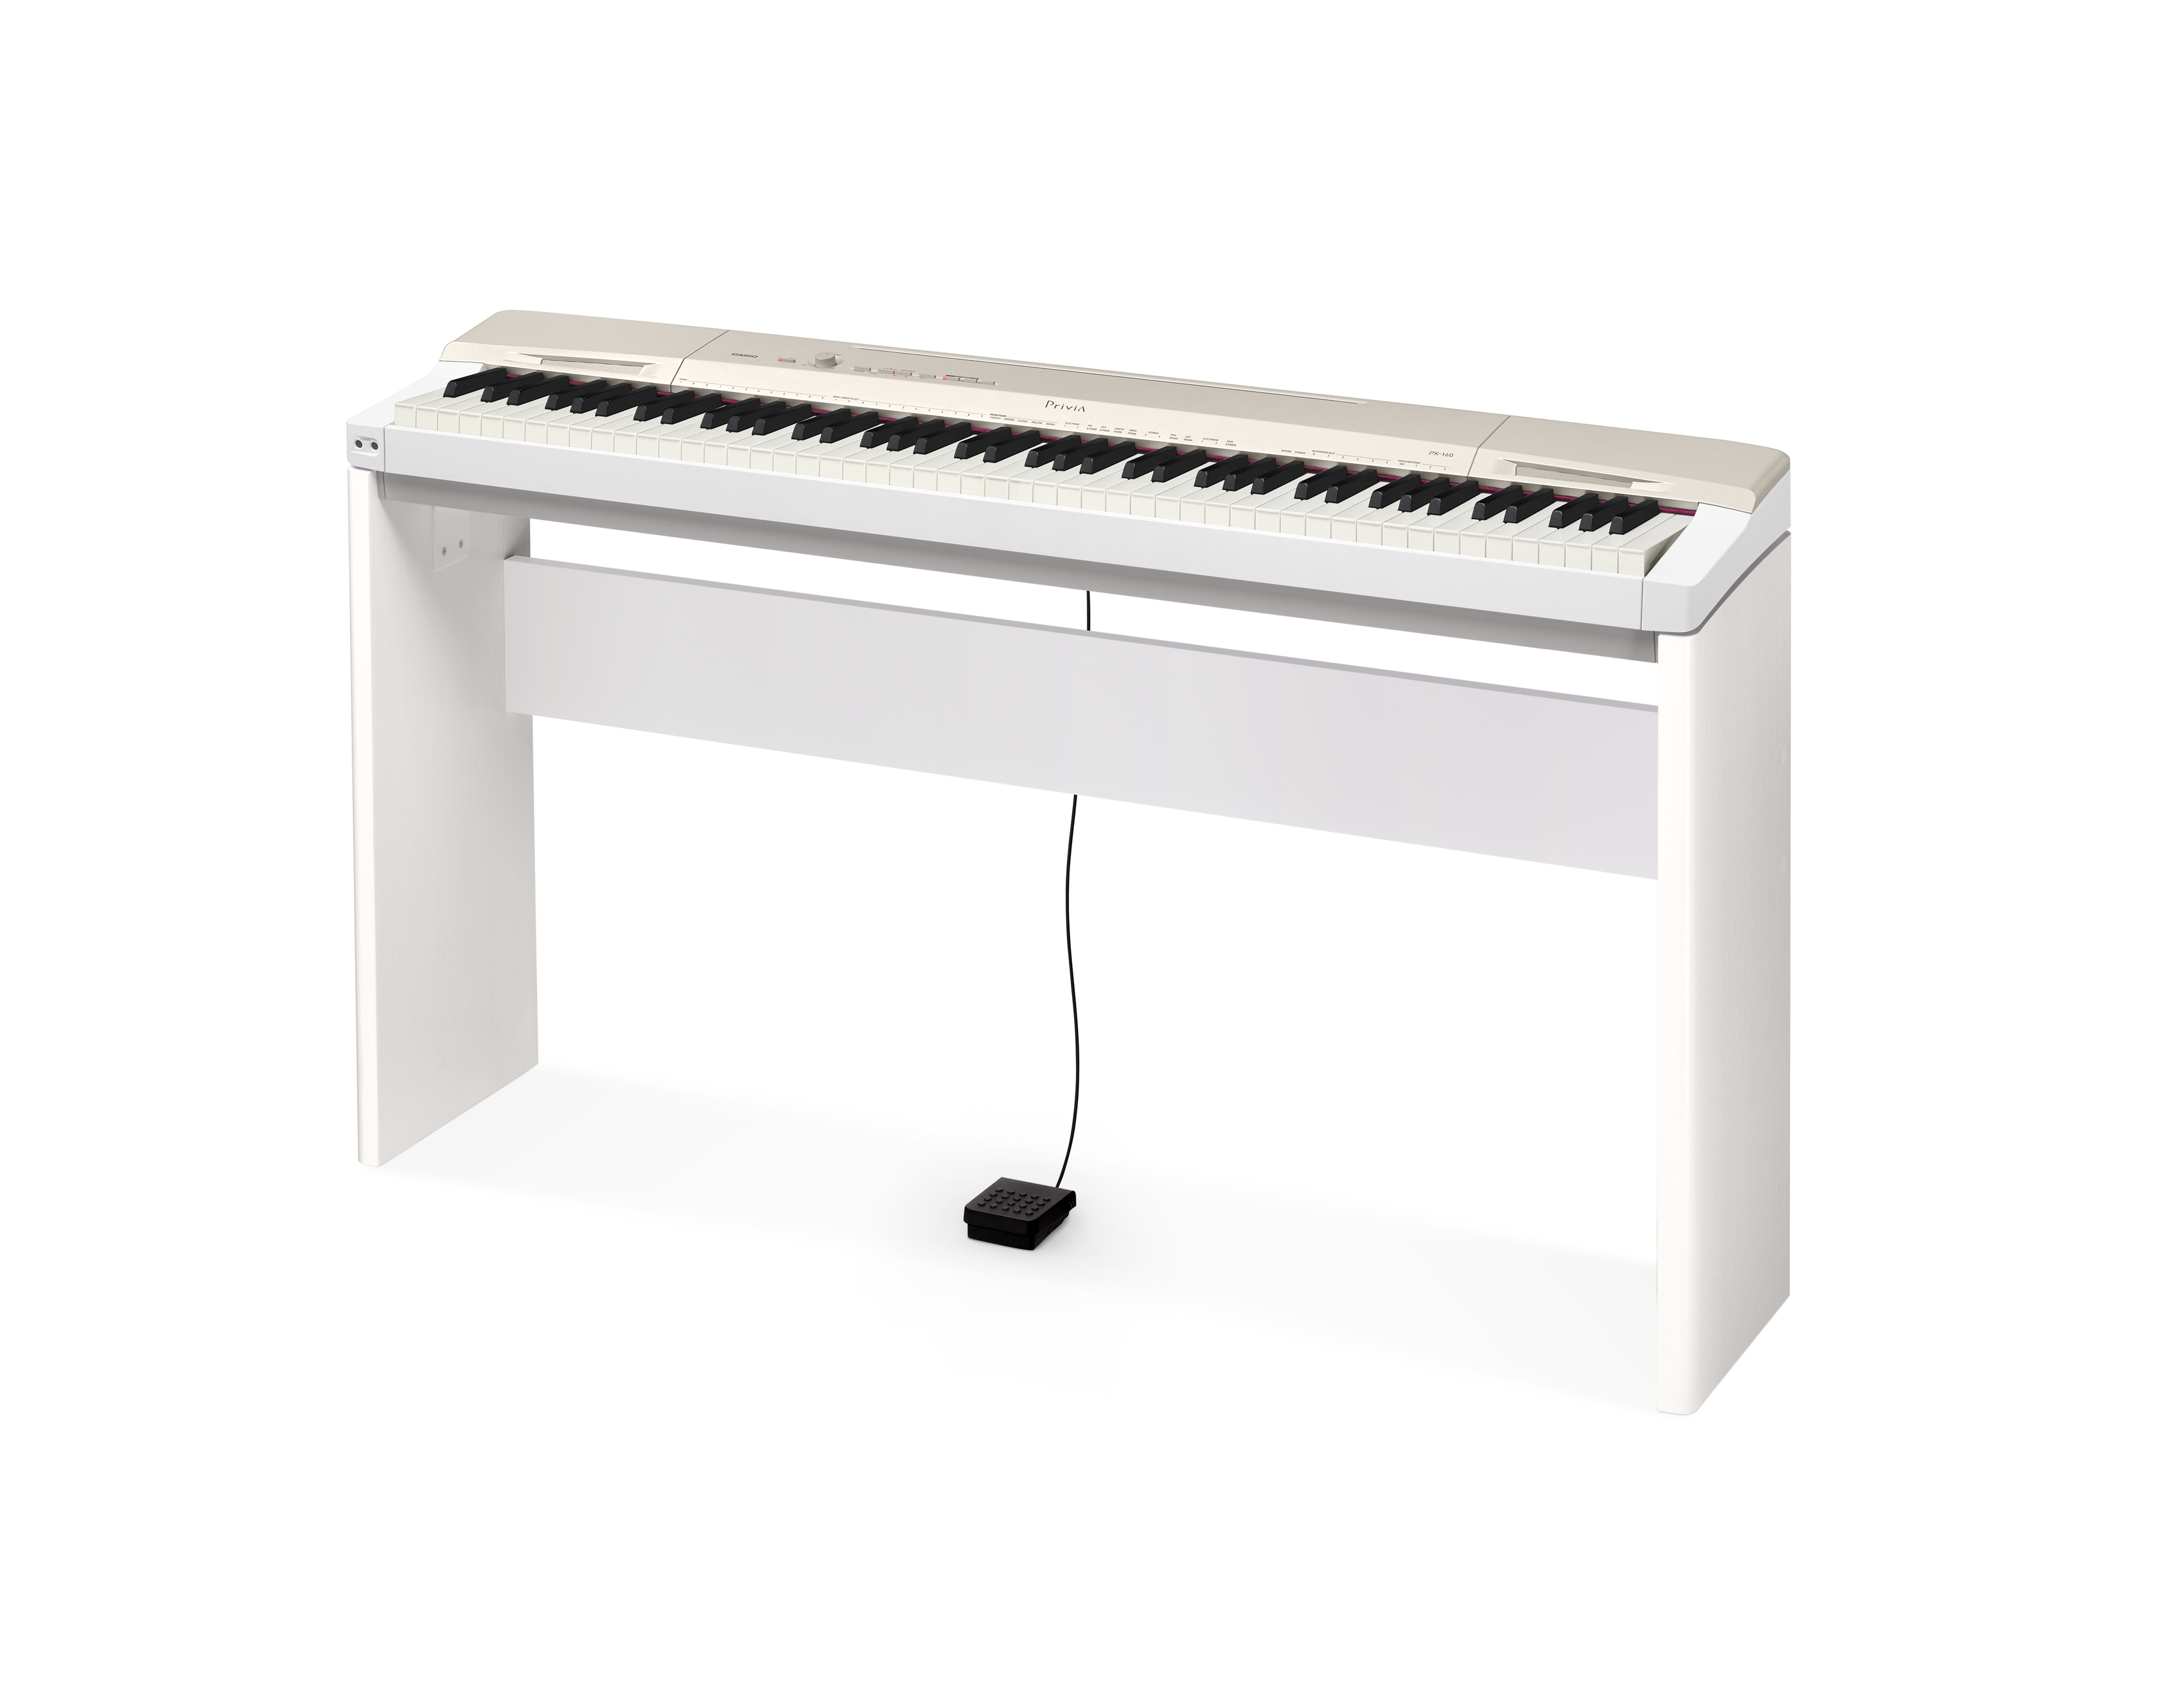 casio privia px 160 digital piano champagne gold w cs 67 stand sp 33 pedal ebay. Black Bedroom Furniture Sets. Home Design Ideas